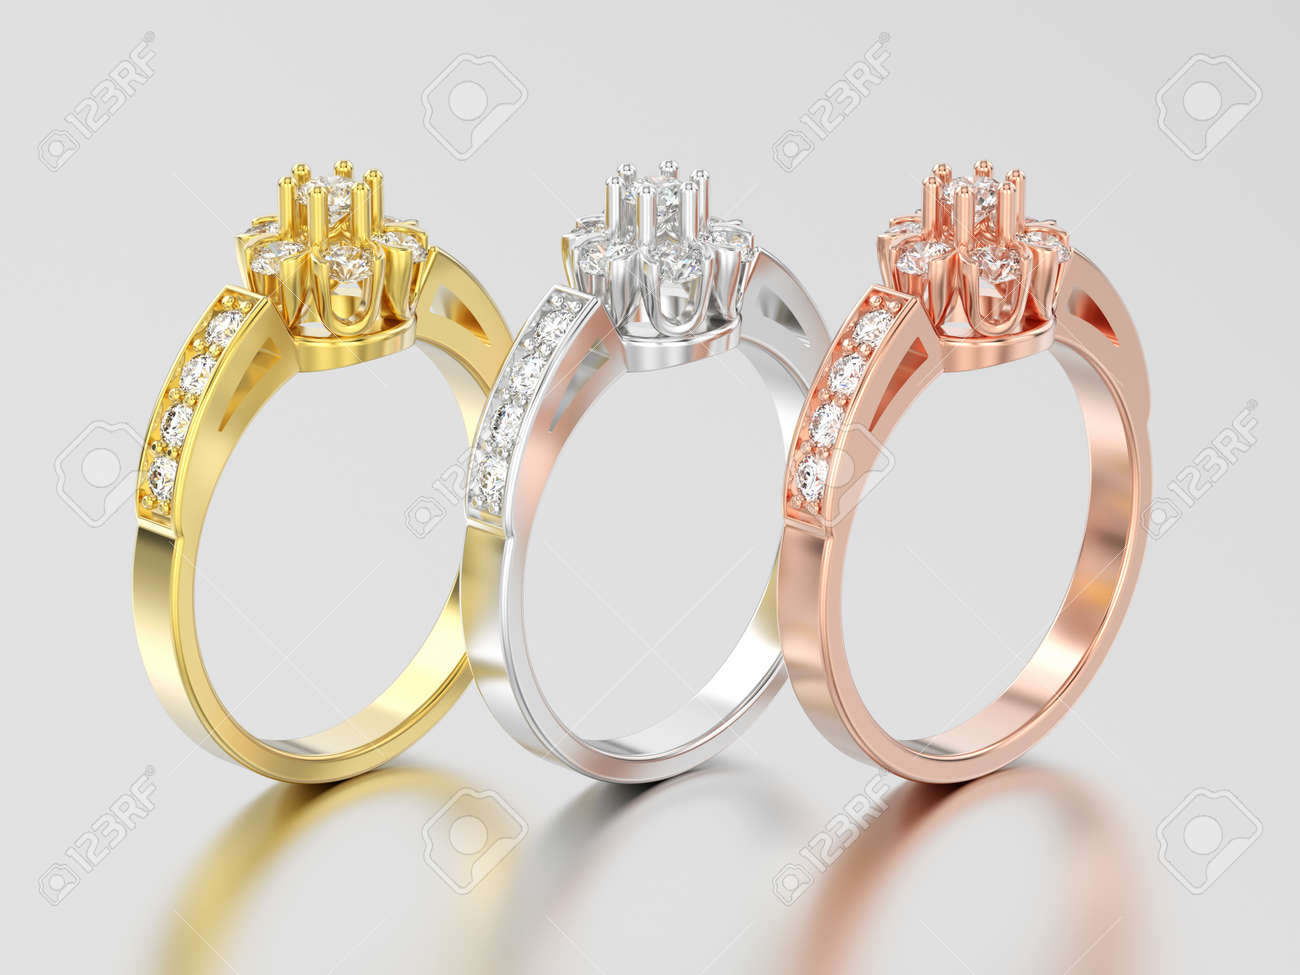 3d Illustration Three Yellow Rose And White Gold Or Silver